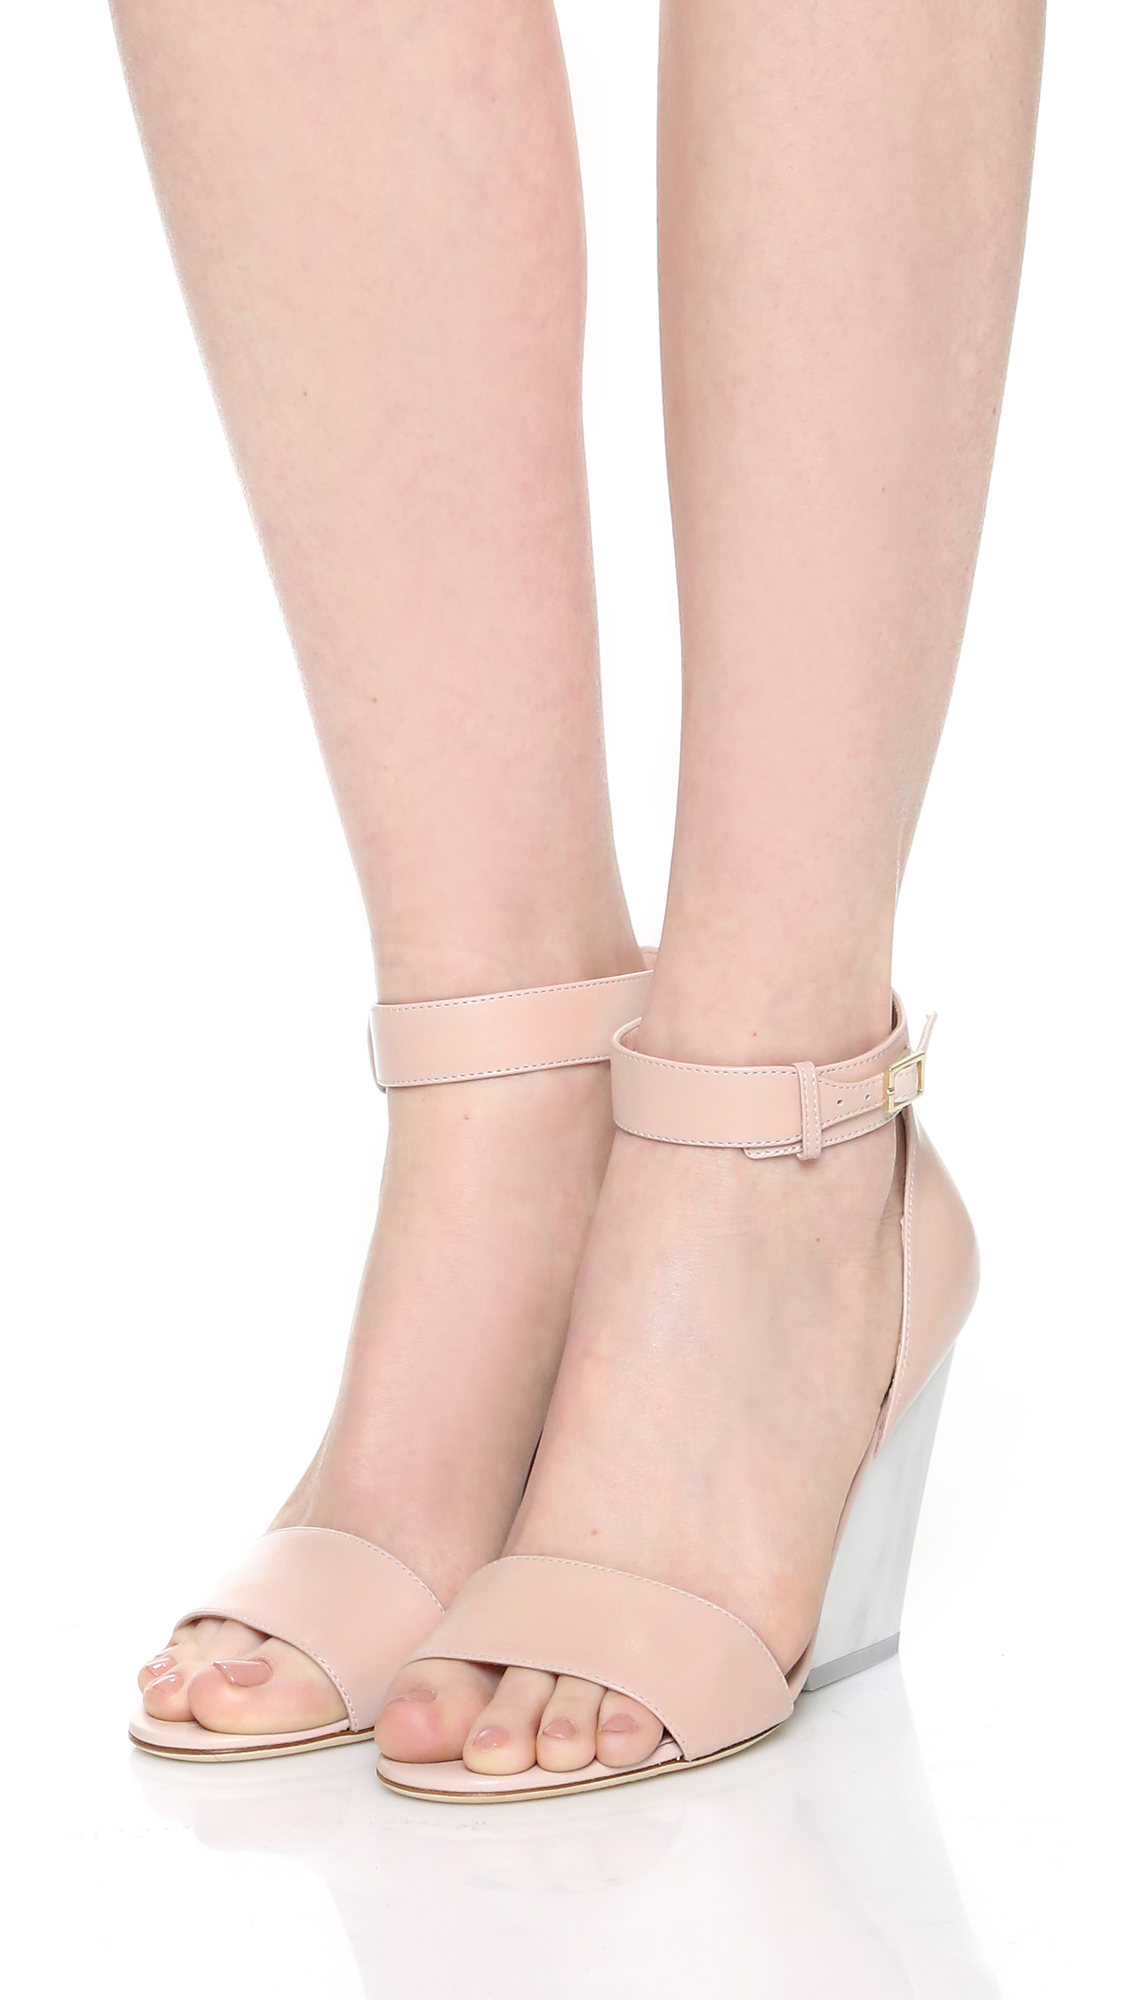 Lyst - Kate Spade New York Indiana Wedge Sandals In Pink-9852